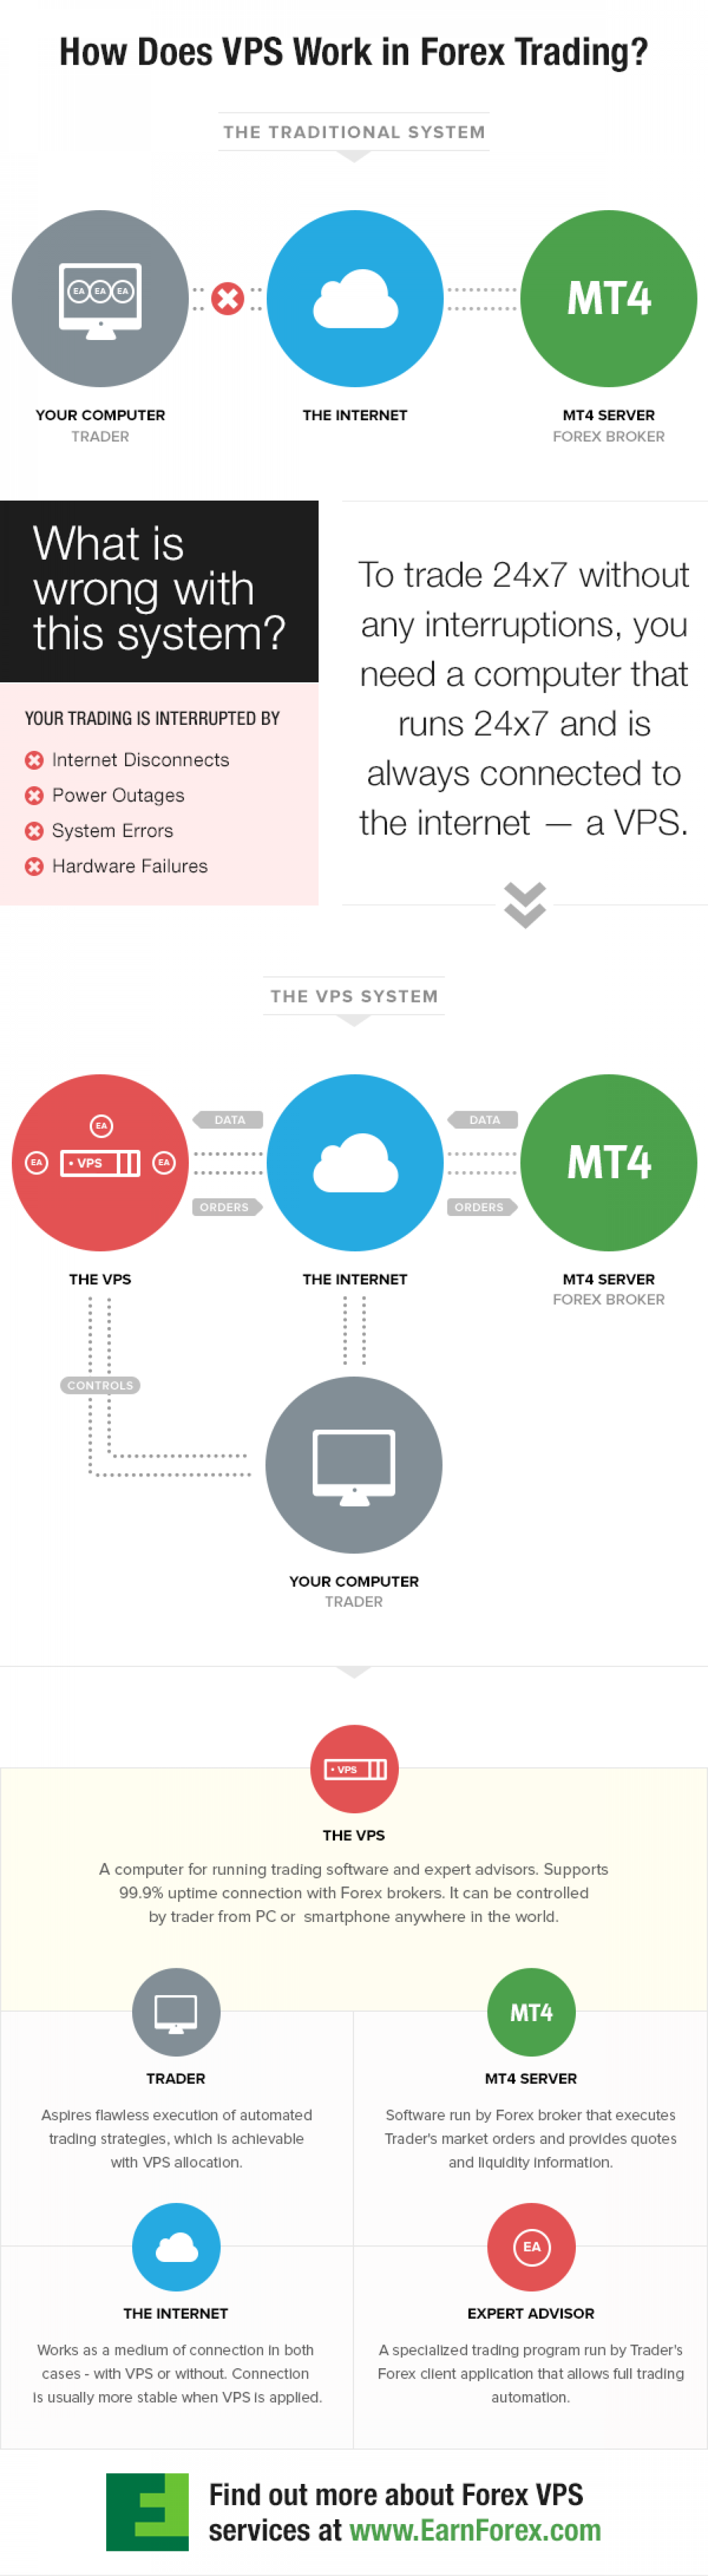 How Does VPS Work in Forex Trading? Infographic